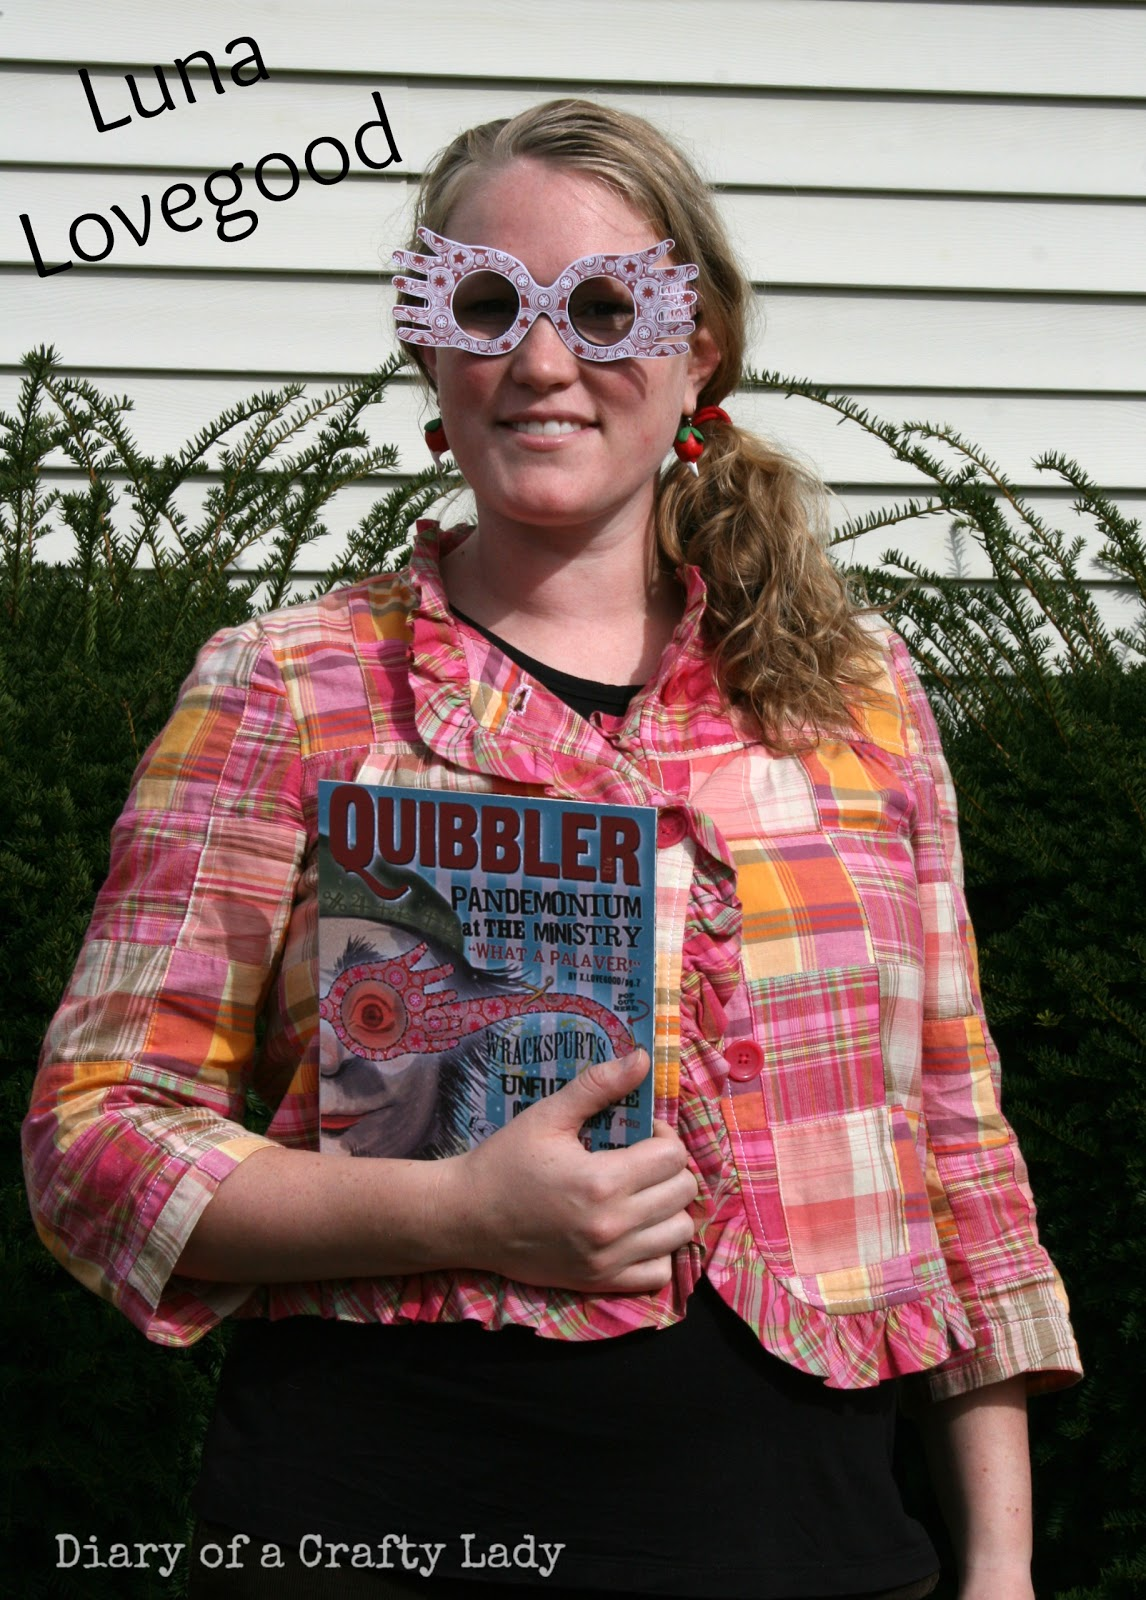 graphic relating to Quibbler Printable referred to as Diary of a Cunning Woman: Oct 2012